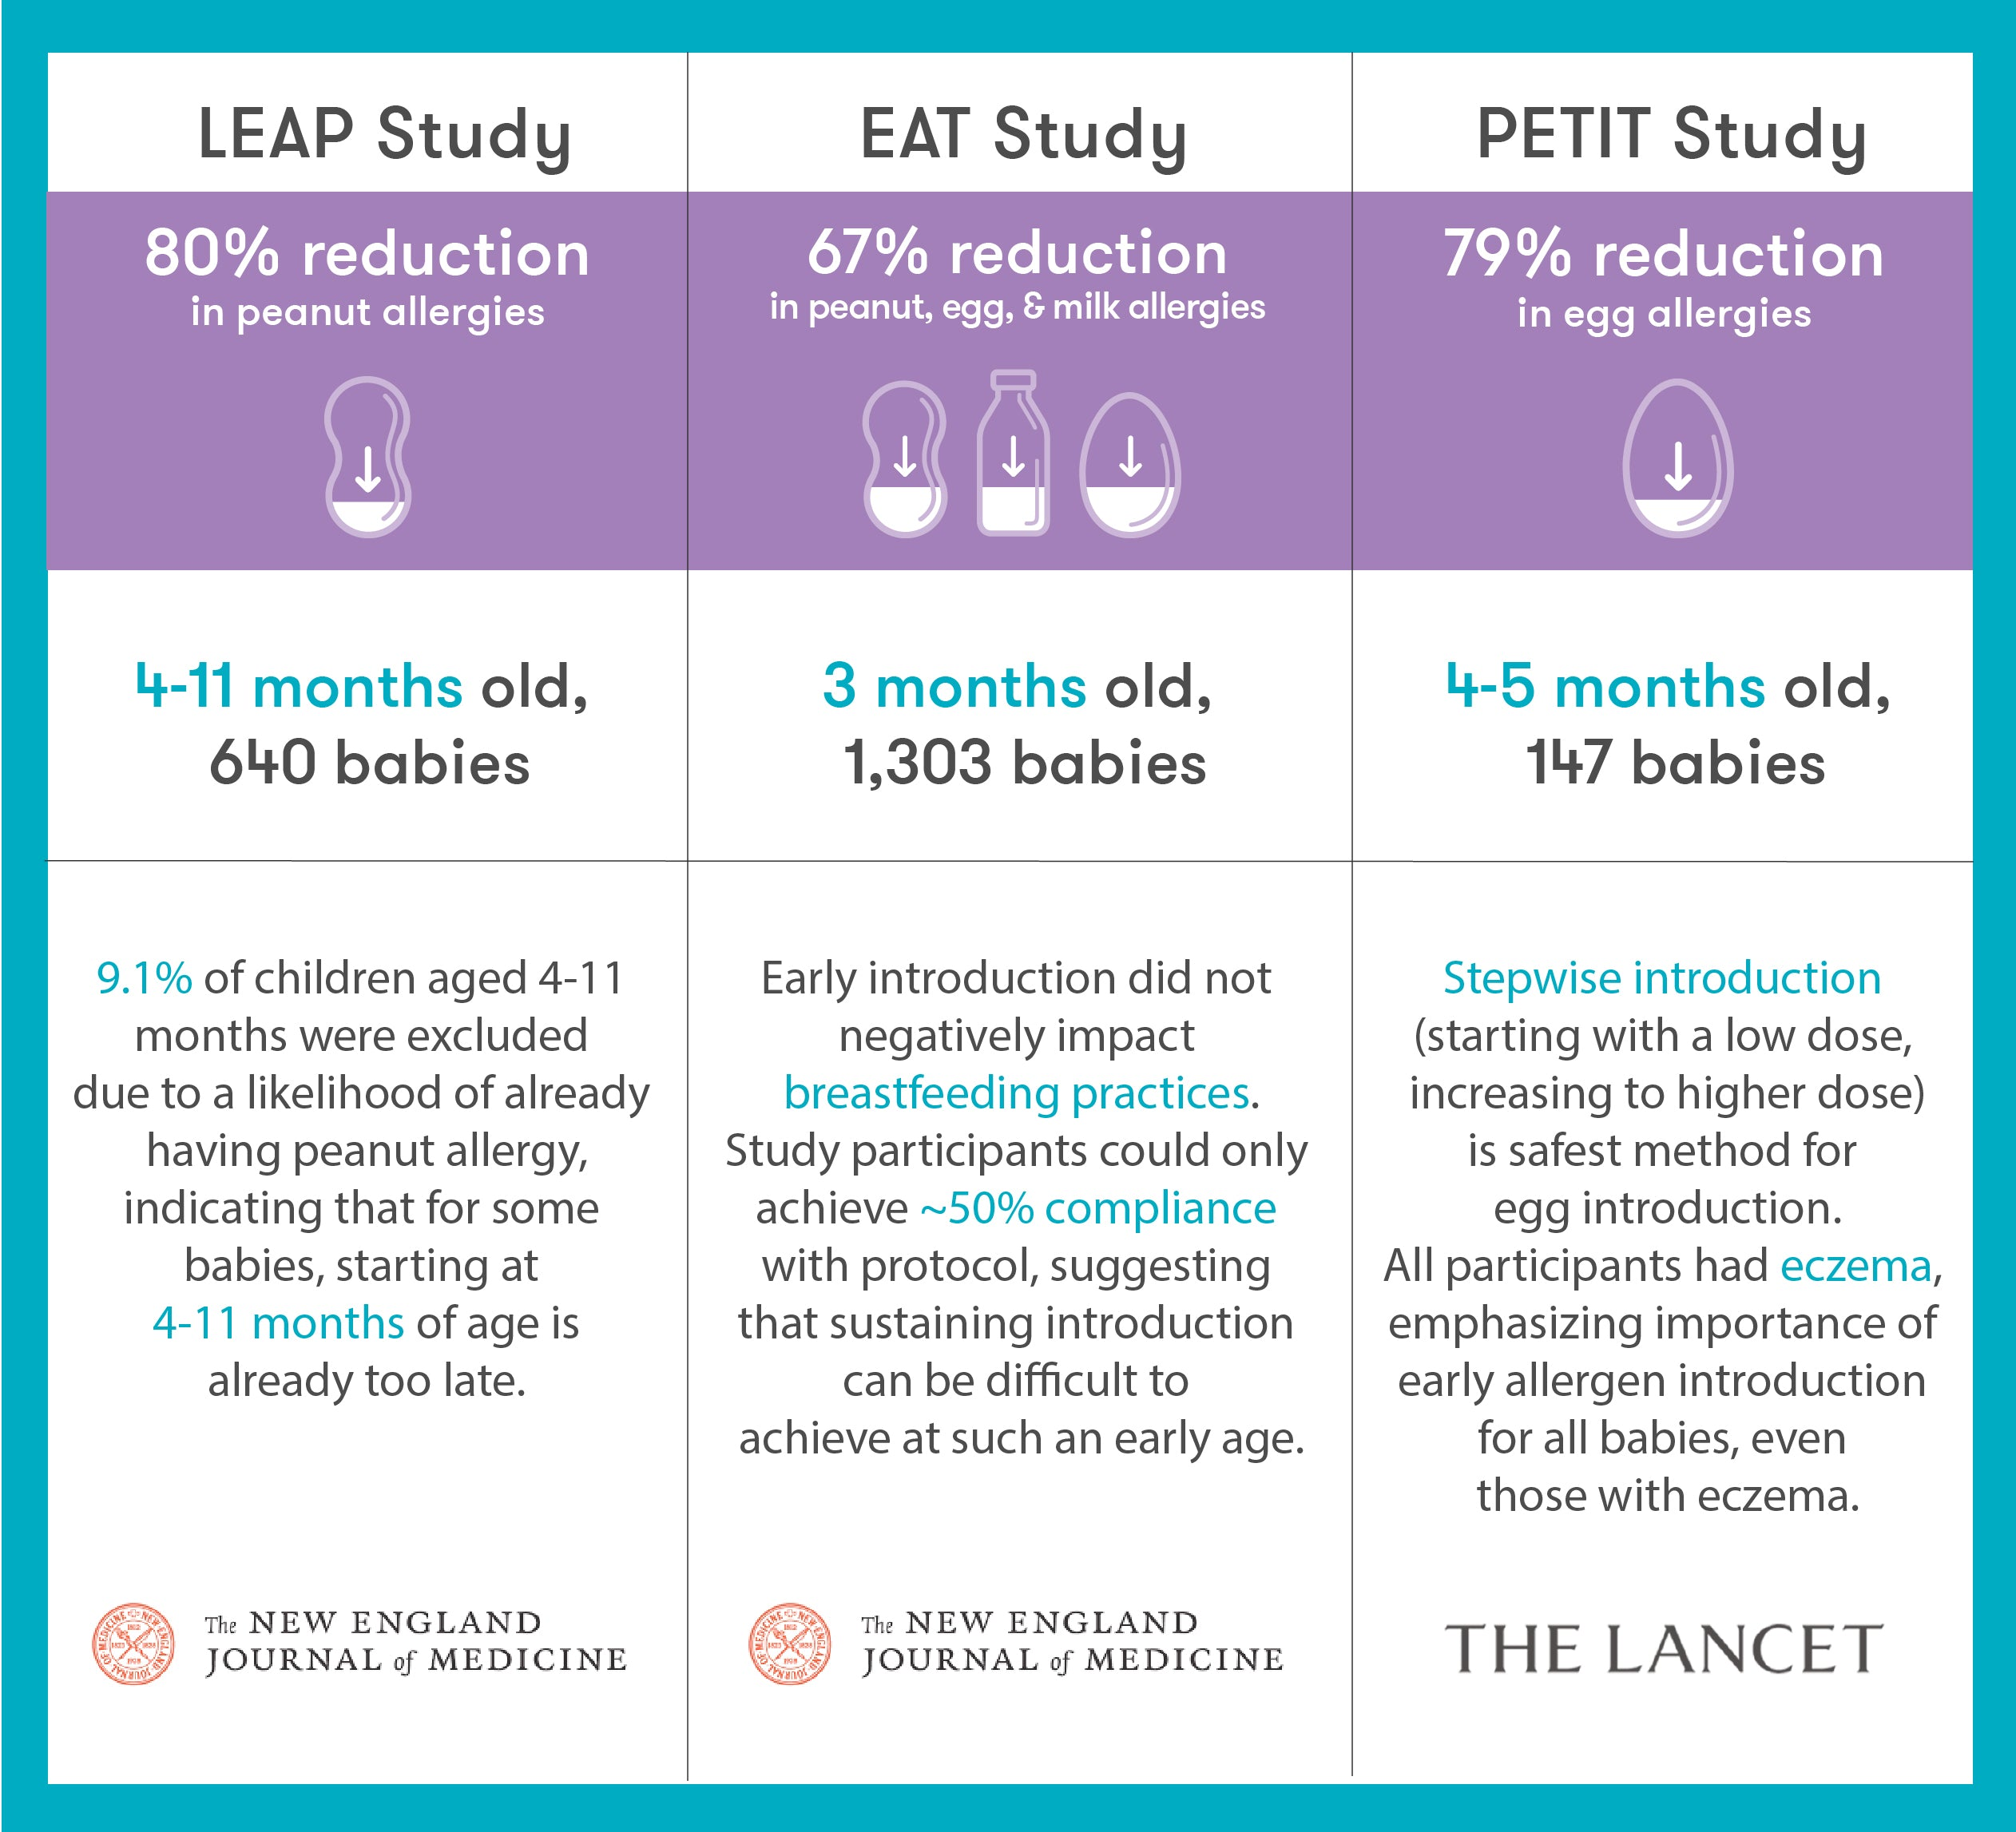 Learning Early About Peanut Allergy (LEAP) Key Outcomes: An 80% reduction of peanut allergy in high-risk infants who consumed the study-recommended amount of peanut protein per week for the suggested time period Takeaways: LEAP established that sustained introduction of peanut beginning in the first 11 months was highly effective in preventing the development of peanut allergy.  A follow-up study (LEAP-ON) later demonstrated that the same infants remained allergy-free through their 4th year of avoiding peanuts. Enquiring About Tolerance (EAT) Key Outcomes: A 67% reduction in the prevalence of overall food allergy, 100% reduction in peanut allergy, and 75% reduction in egg allergy in the early introduction group Takeaways: Early introduction of allergenic foods starting at 3 months compared to starting after 6 months was both safe and demonstrated a significant reduction in food allergy prevalence, suggesting that there are more benefits to introducing allergens earlier rather than later and as early as 3 months. One of the key findings from the study established that early allergen introduction did not negatively impact breastfeeding practices. However, study participants could only achieve 50% compliance with protocol, indicating that early and sustained introduction was difficult to achieve at such a young age. Prevention of Egg Allergy with Tiny Amount Intake (PETIT) Key Outcomes: A 79% reduction in egg allergy prevalence among infants with eczema who consumed the study-recommended amount of cooked egg protein per week Takeaways: Stepwise introduction of egg safely and effectively prevents the development of egg allergies in children. Delaying introduction of these allergens may actually increase the incidence of food allergies.